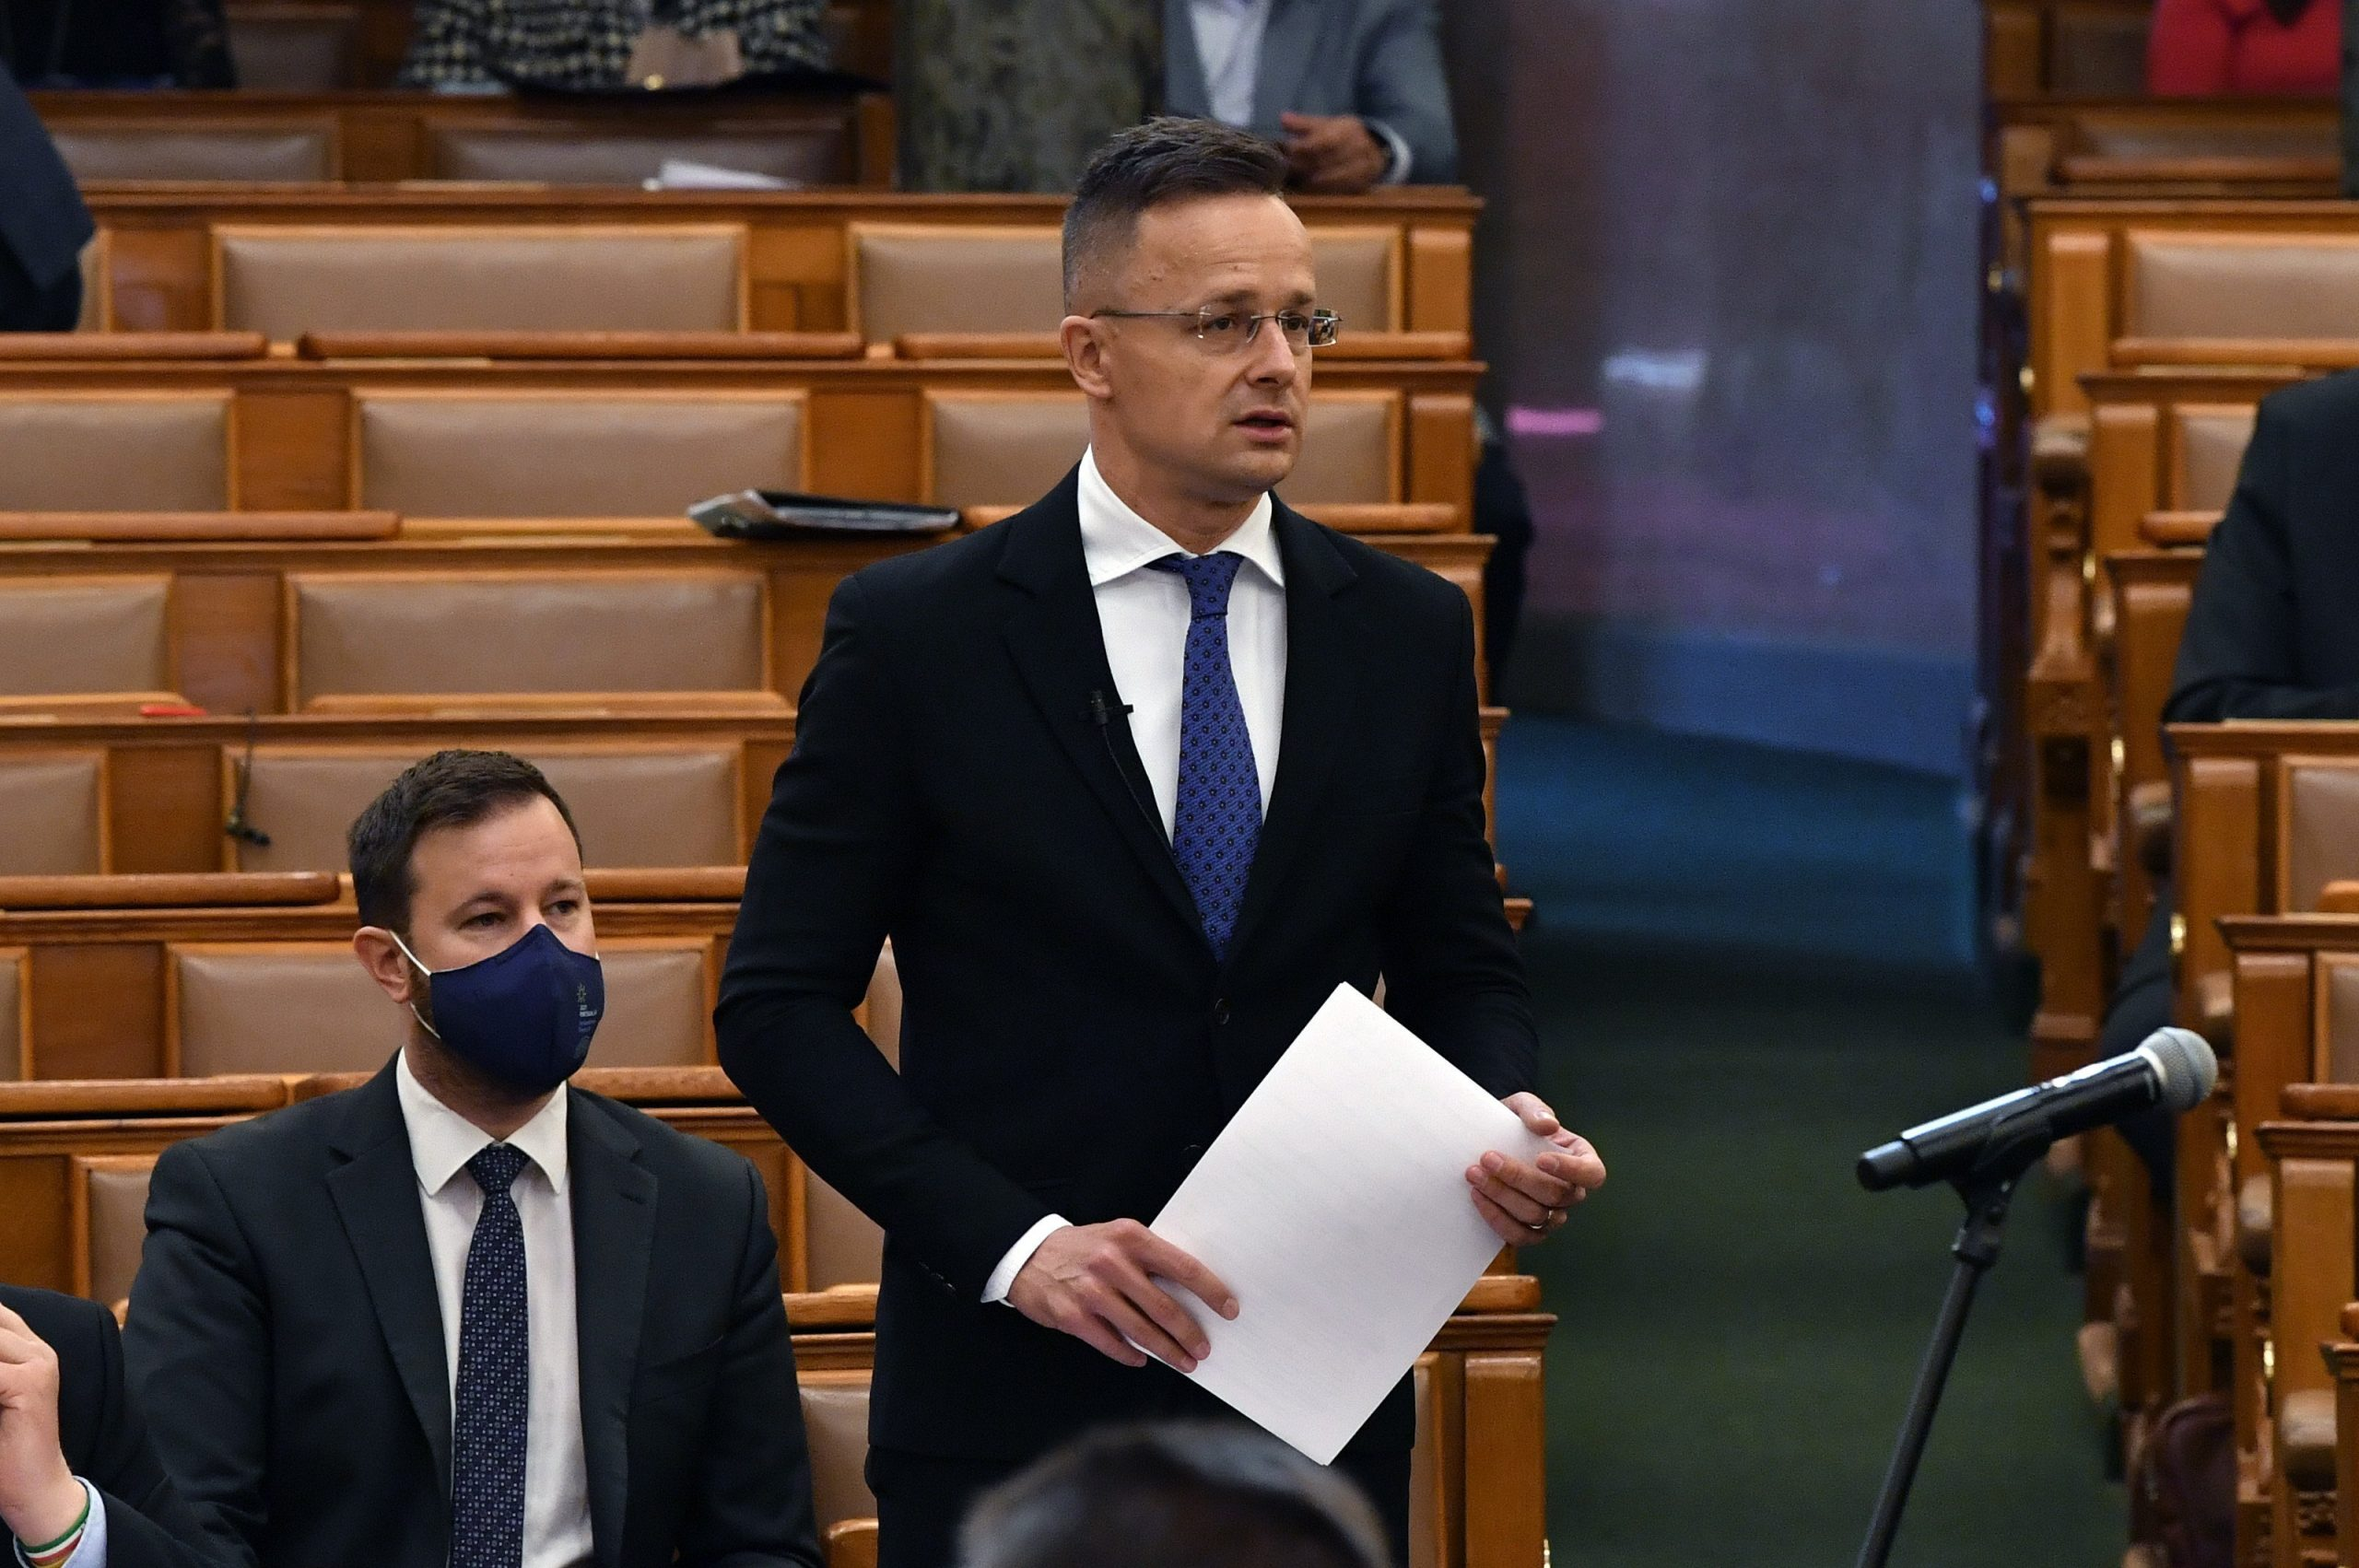 Foreign Minister: Hungary Rejects Plans to Introduce Global Minimum Tax